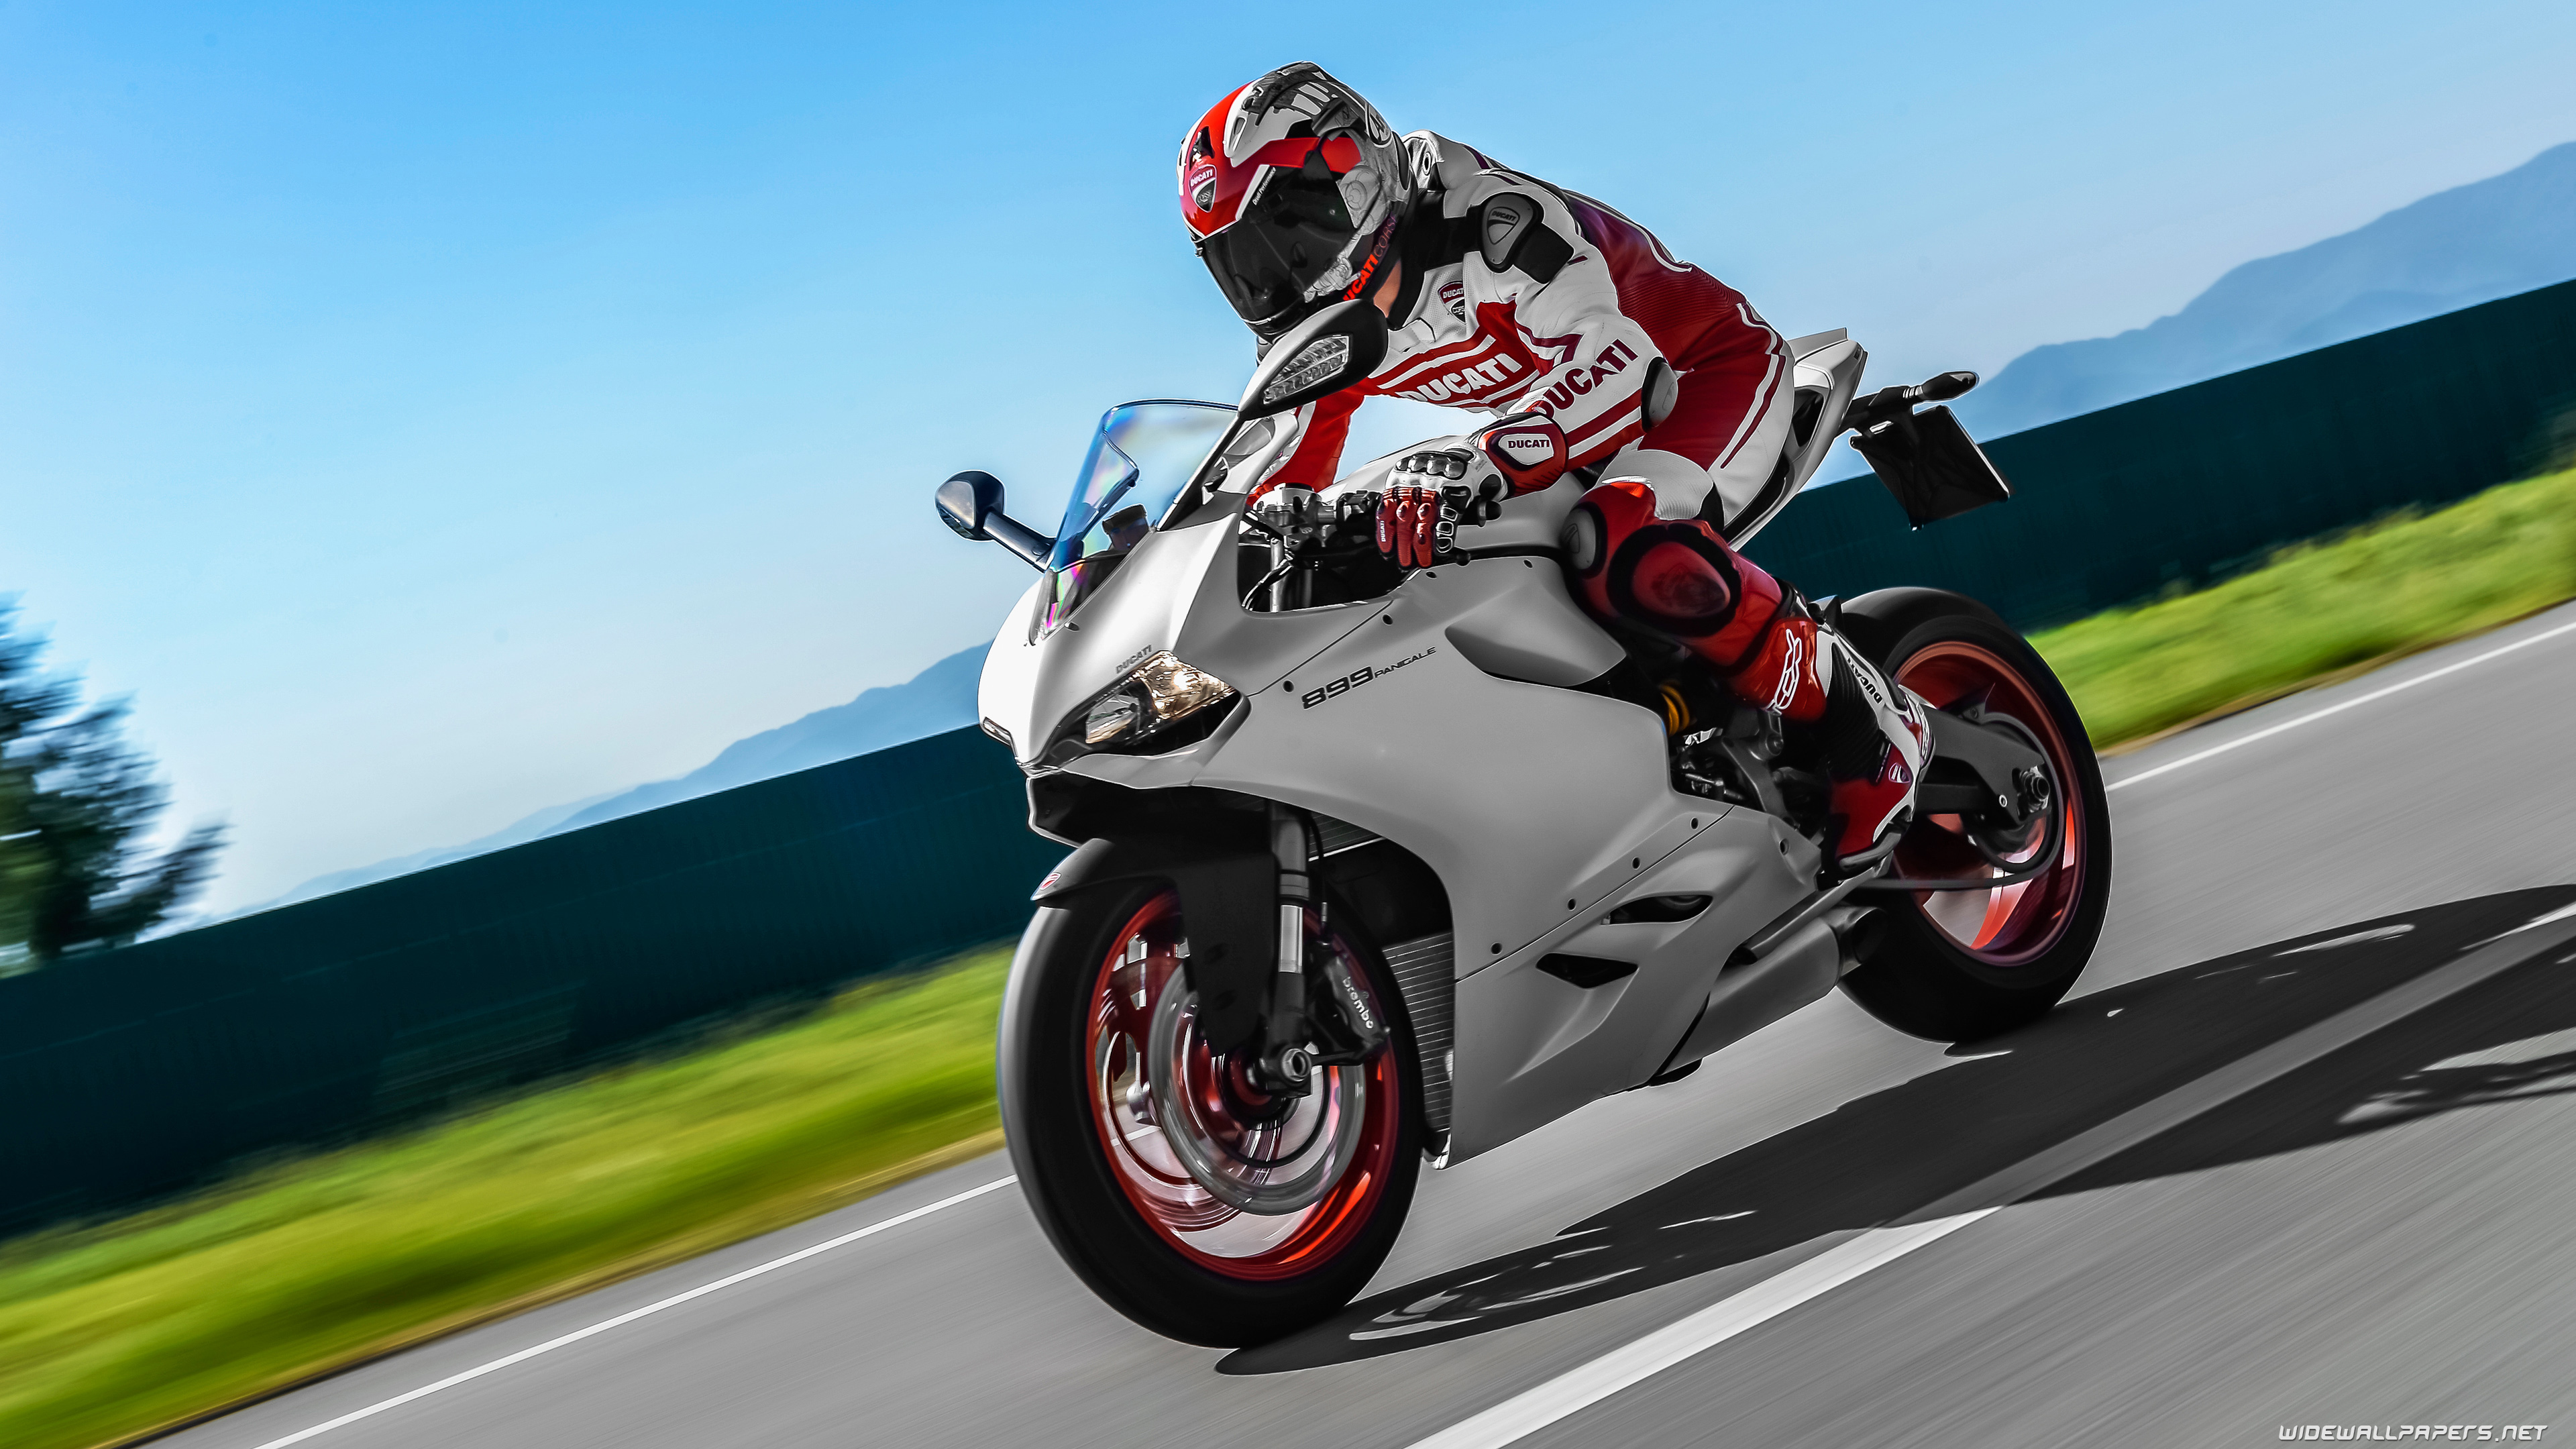 Superbike Hd Wallpaper Full Screen: Ducati Superbike 899 Panigale Motorcycle Desktop